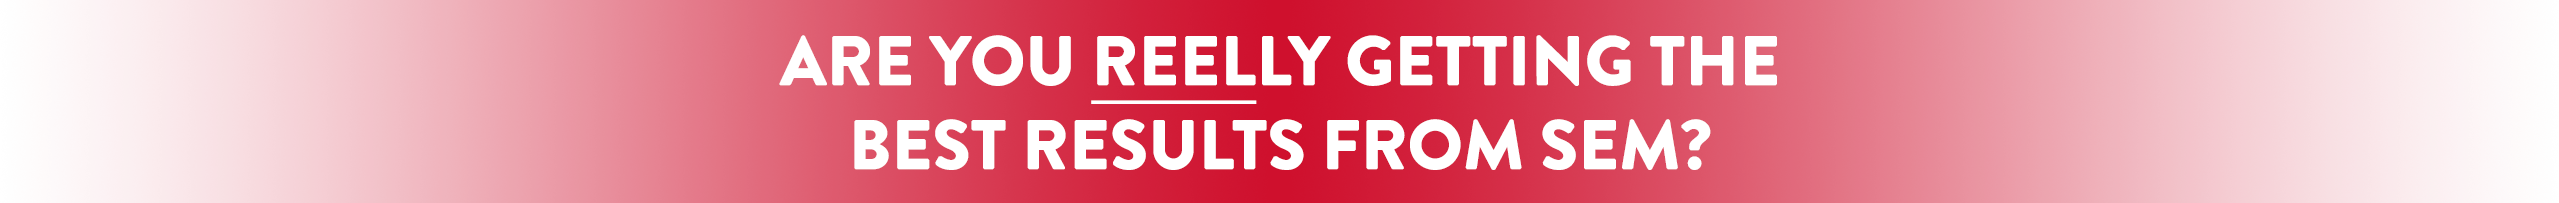 Are You Reelly Getting The Best Results From SEM?